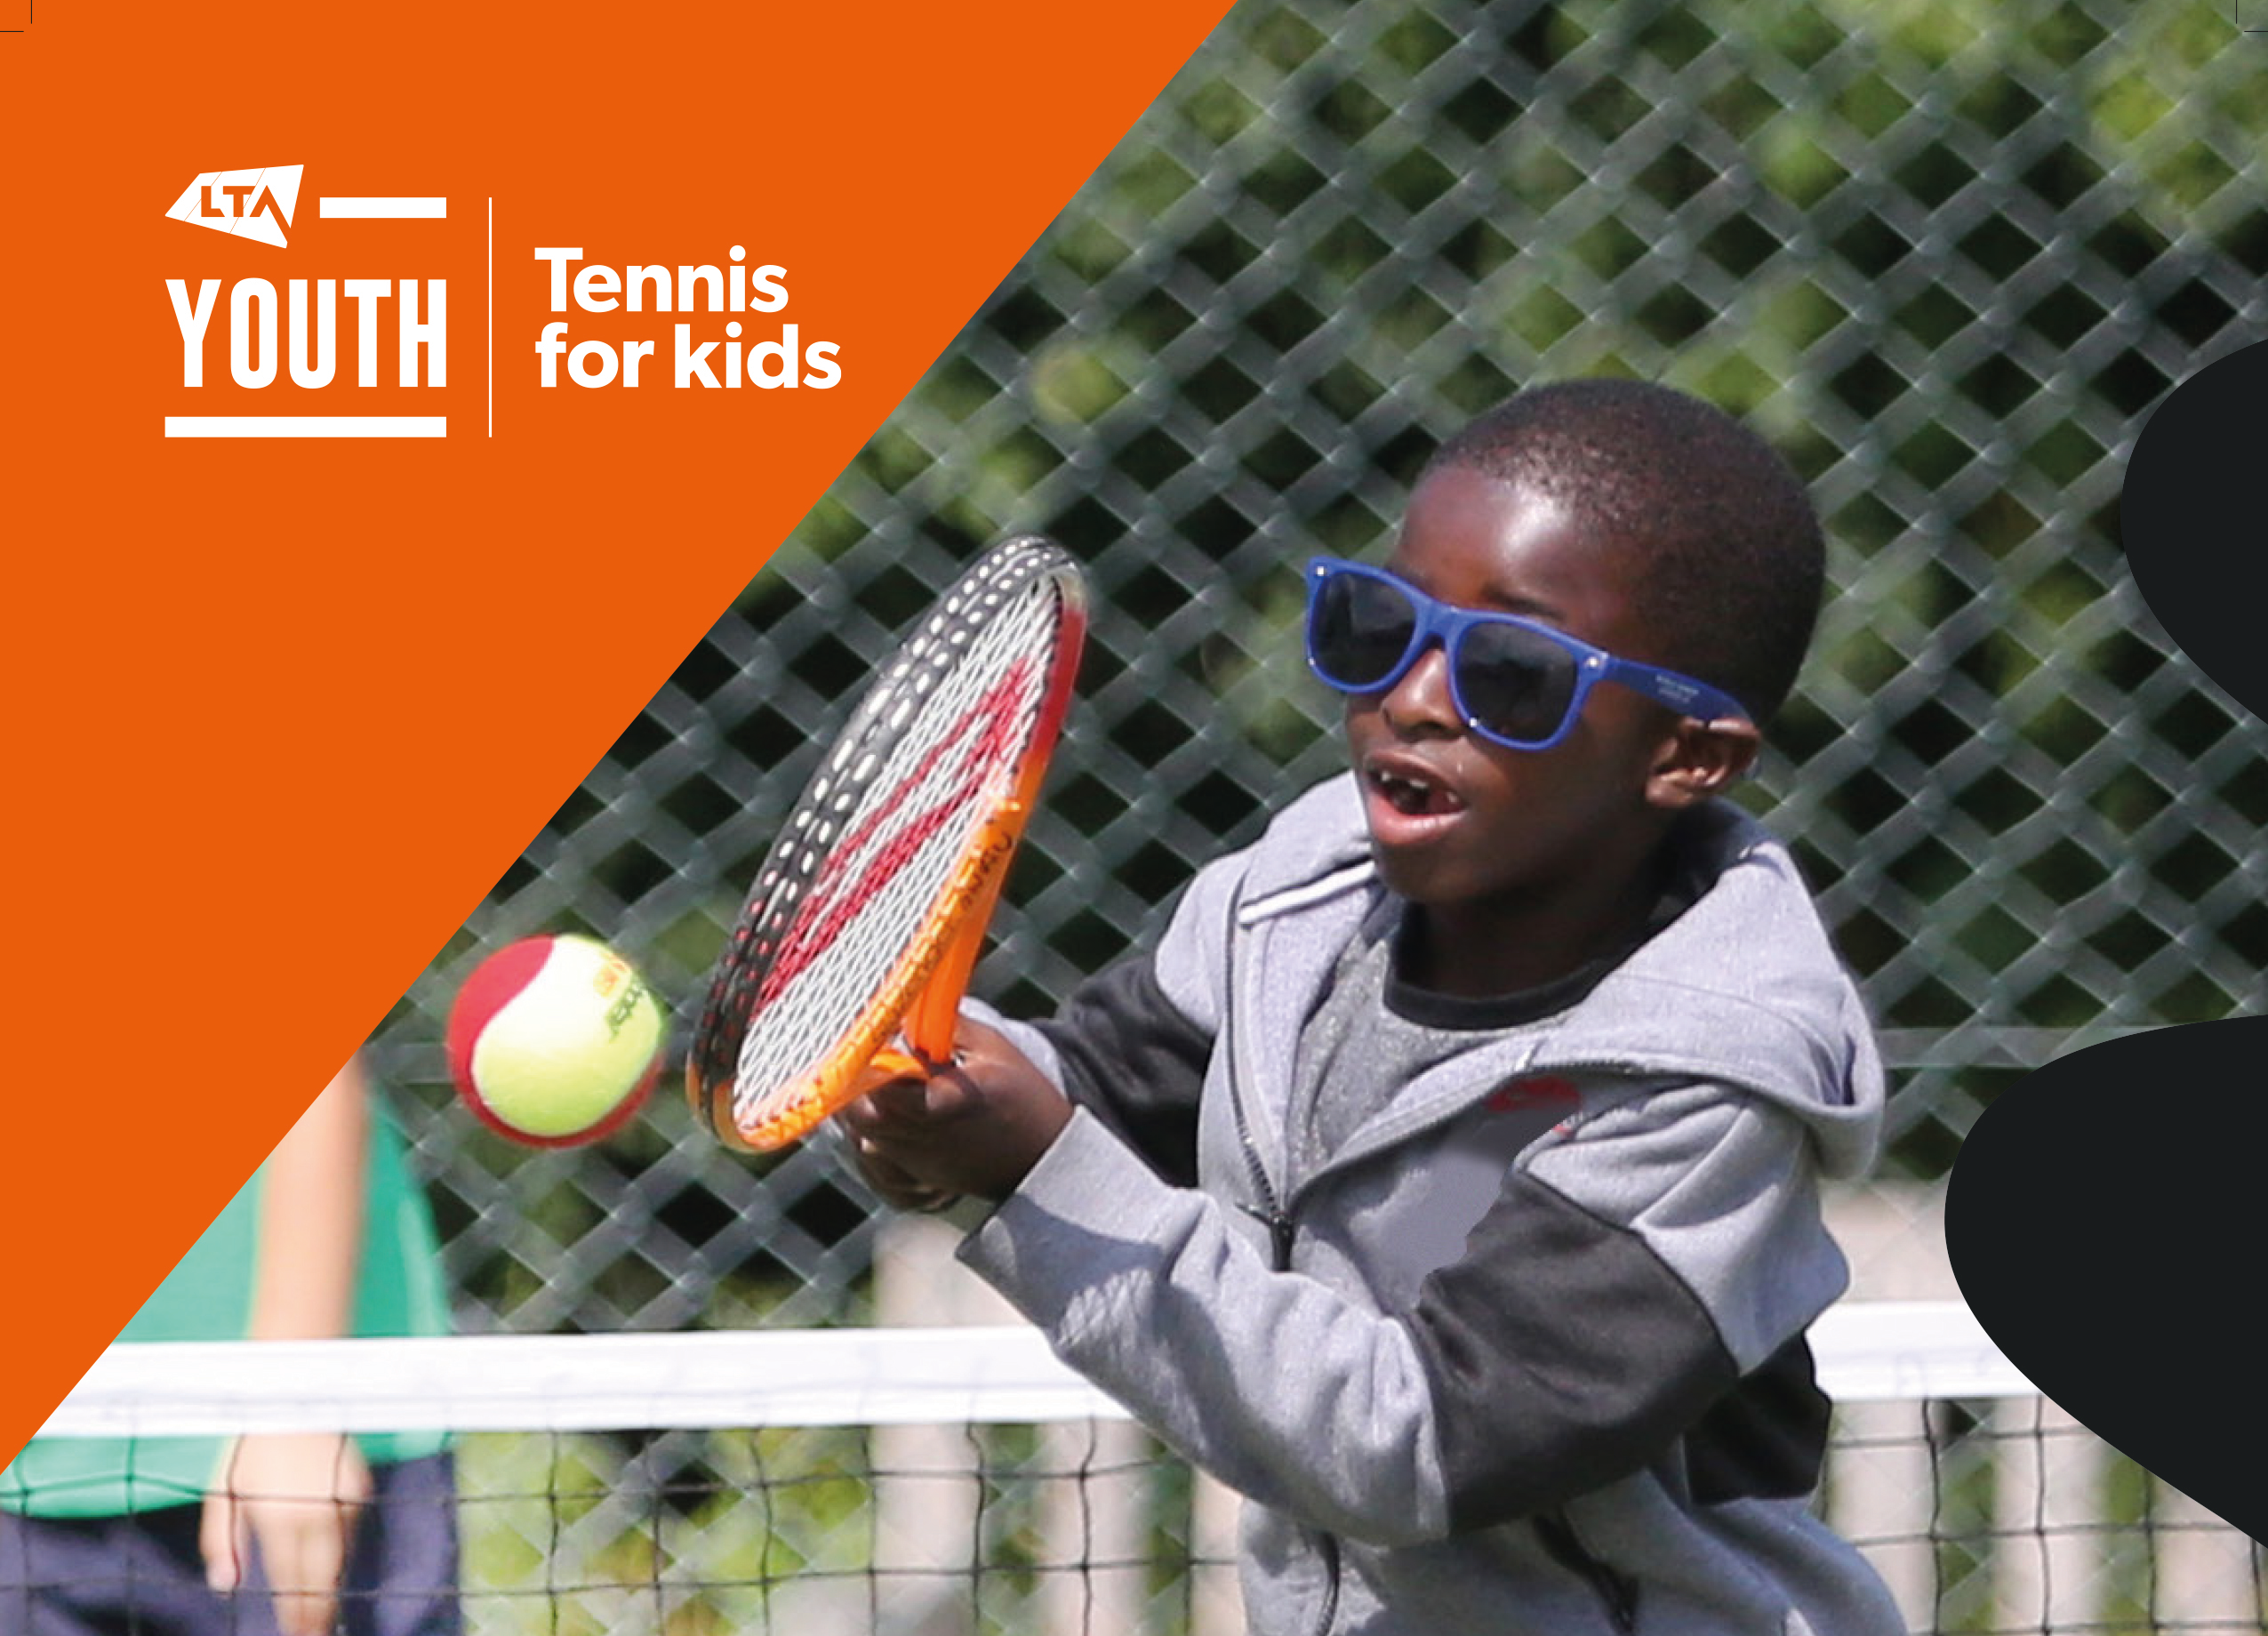 LTA Poster of young boy in sunglasses playing tennis